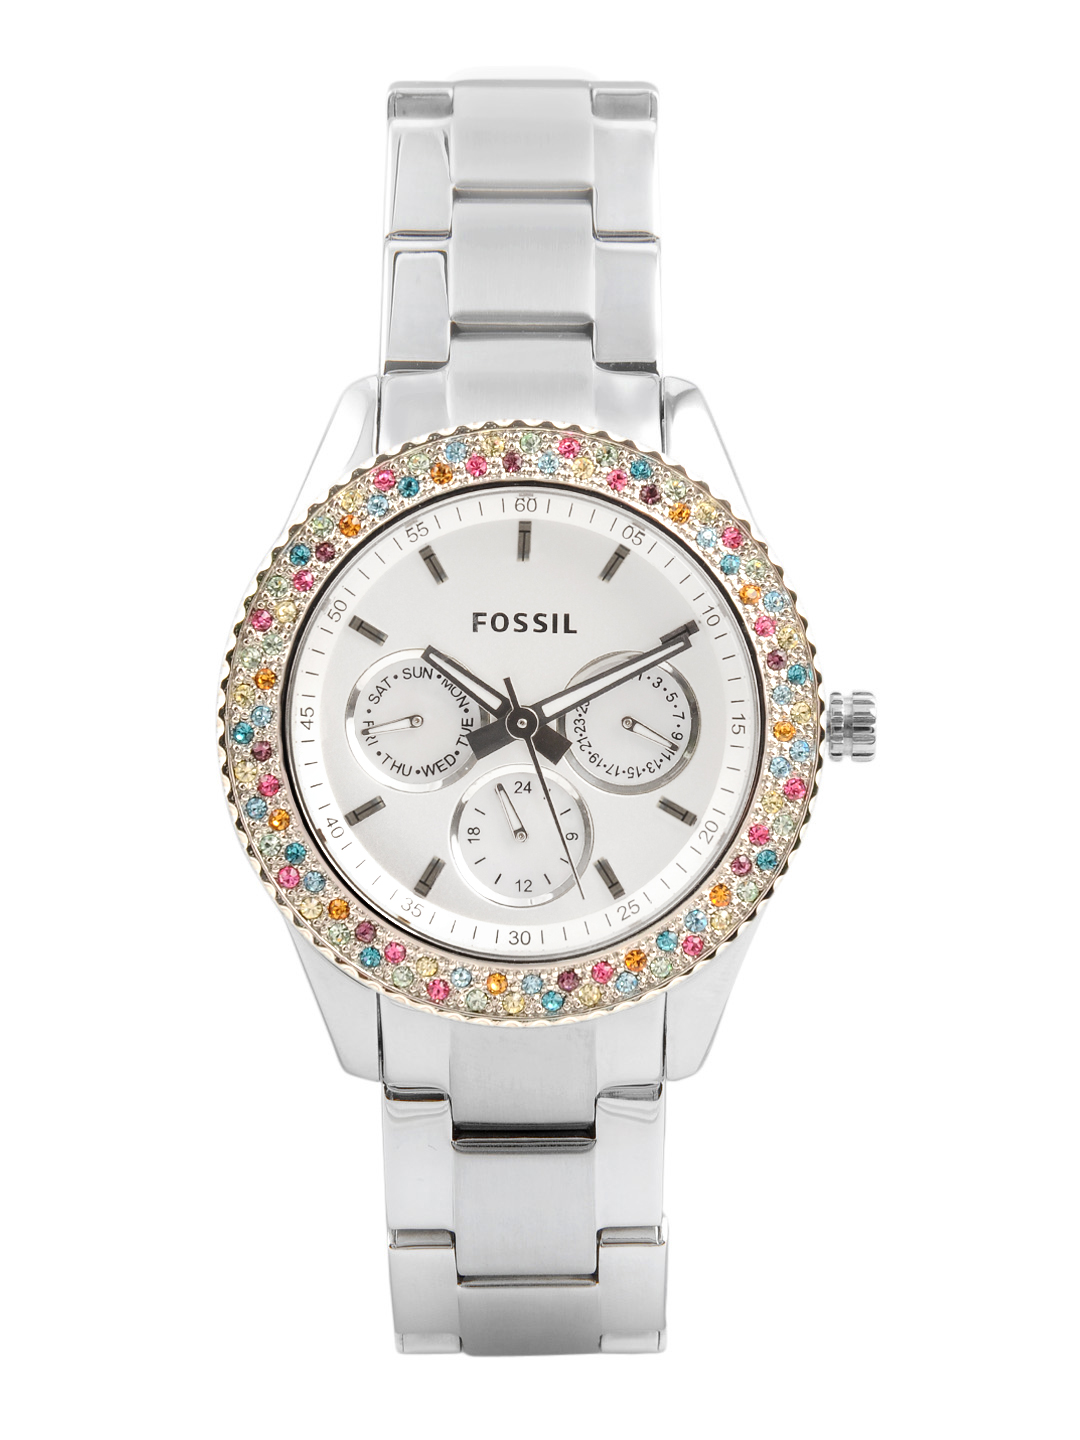 Fossil Women White Chronograph Watch